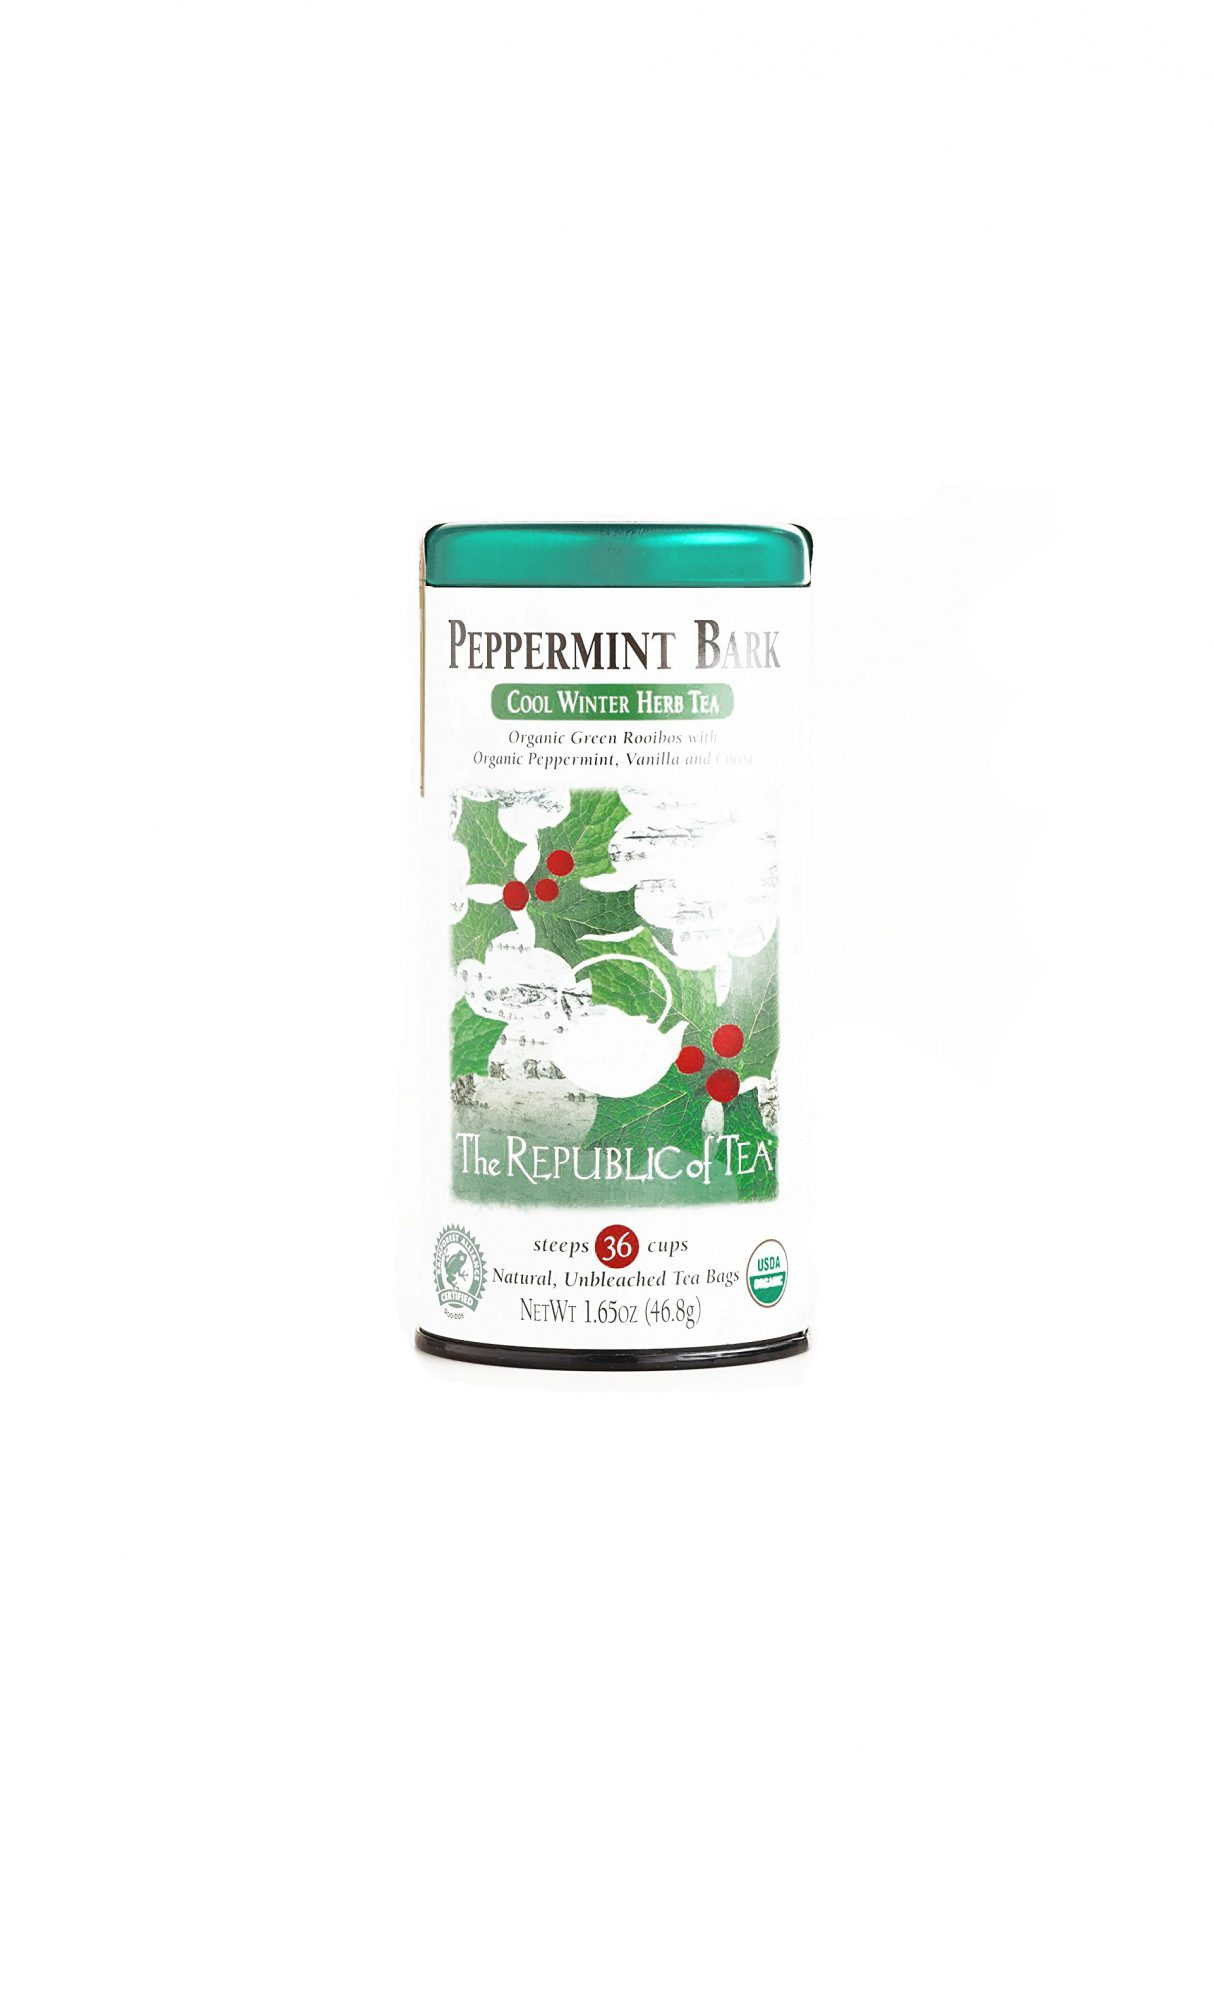 The Republic of Tea Peppermint Bark Cool Winter Herb Tea